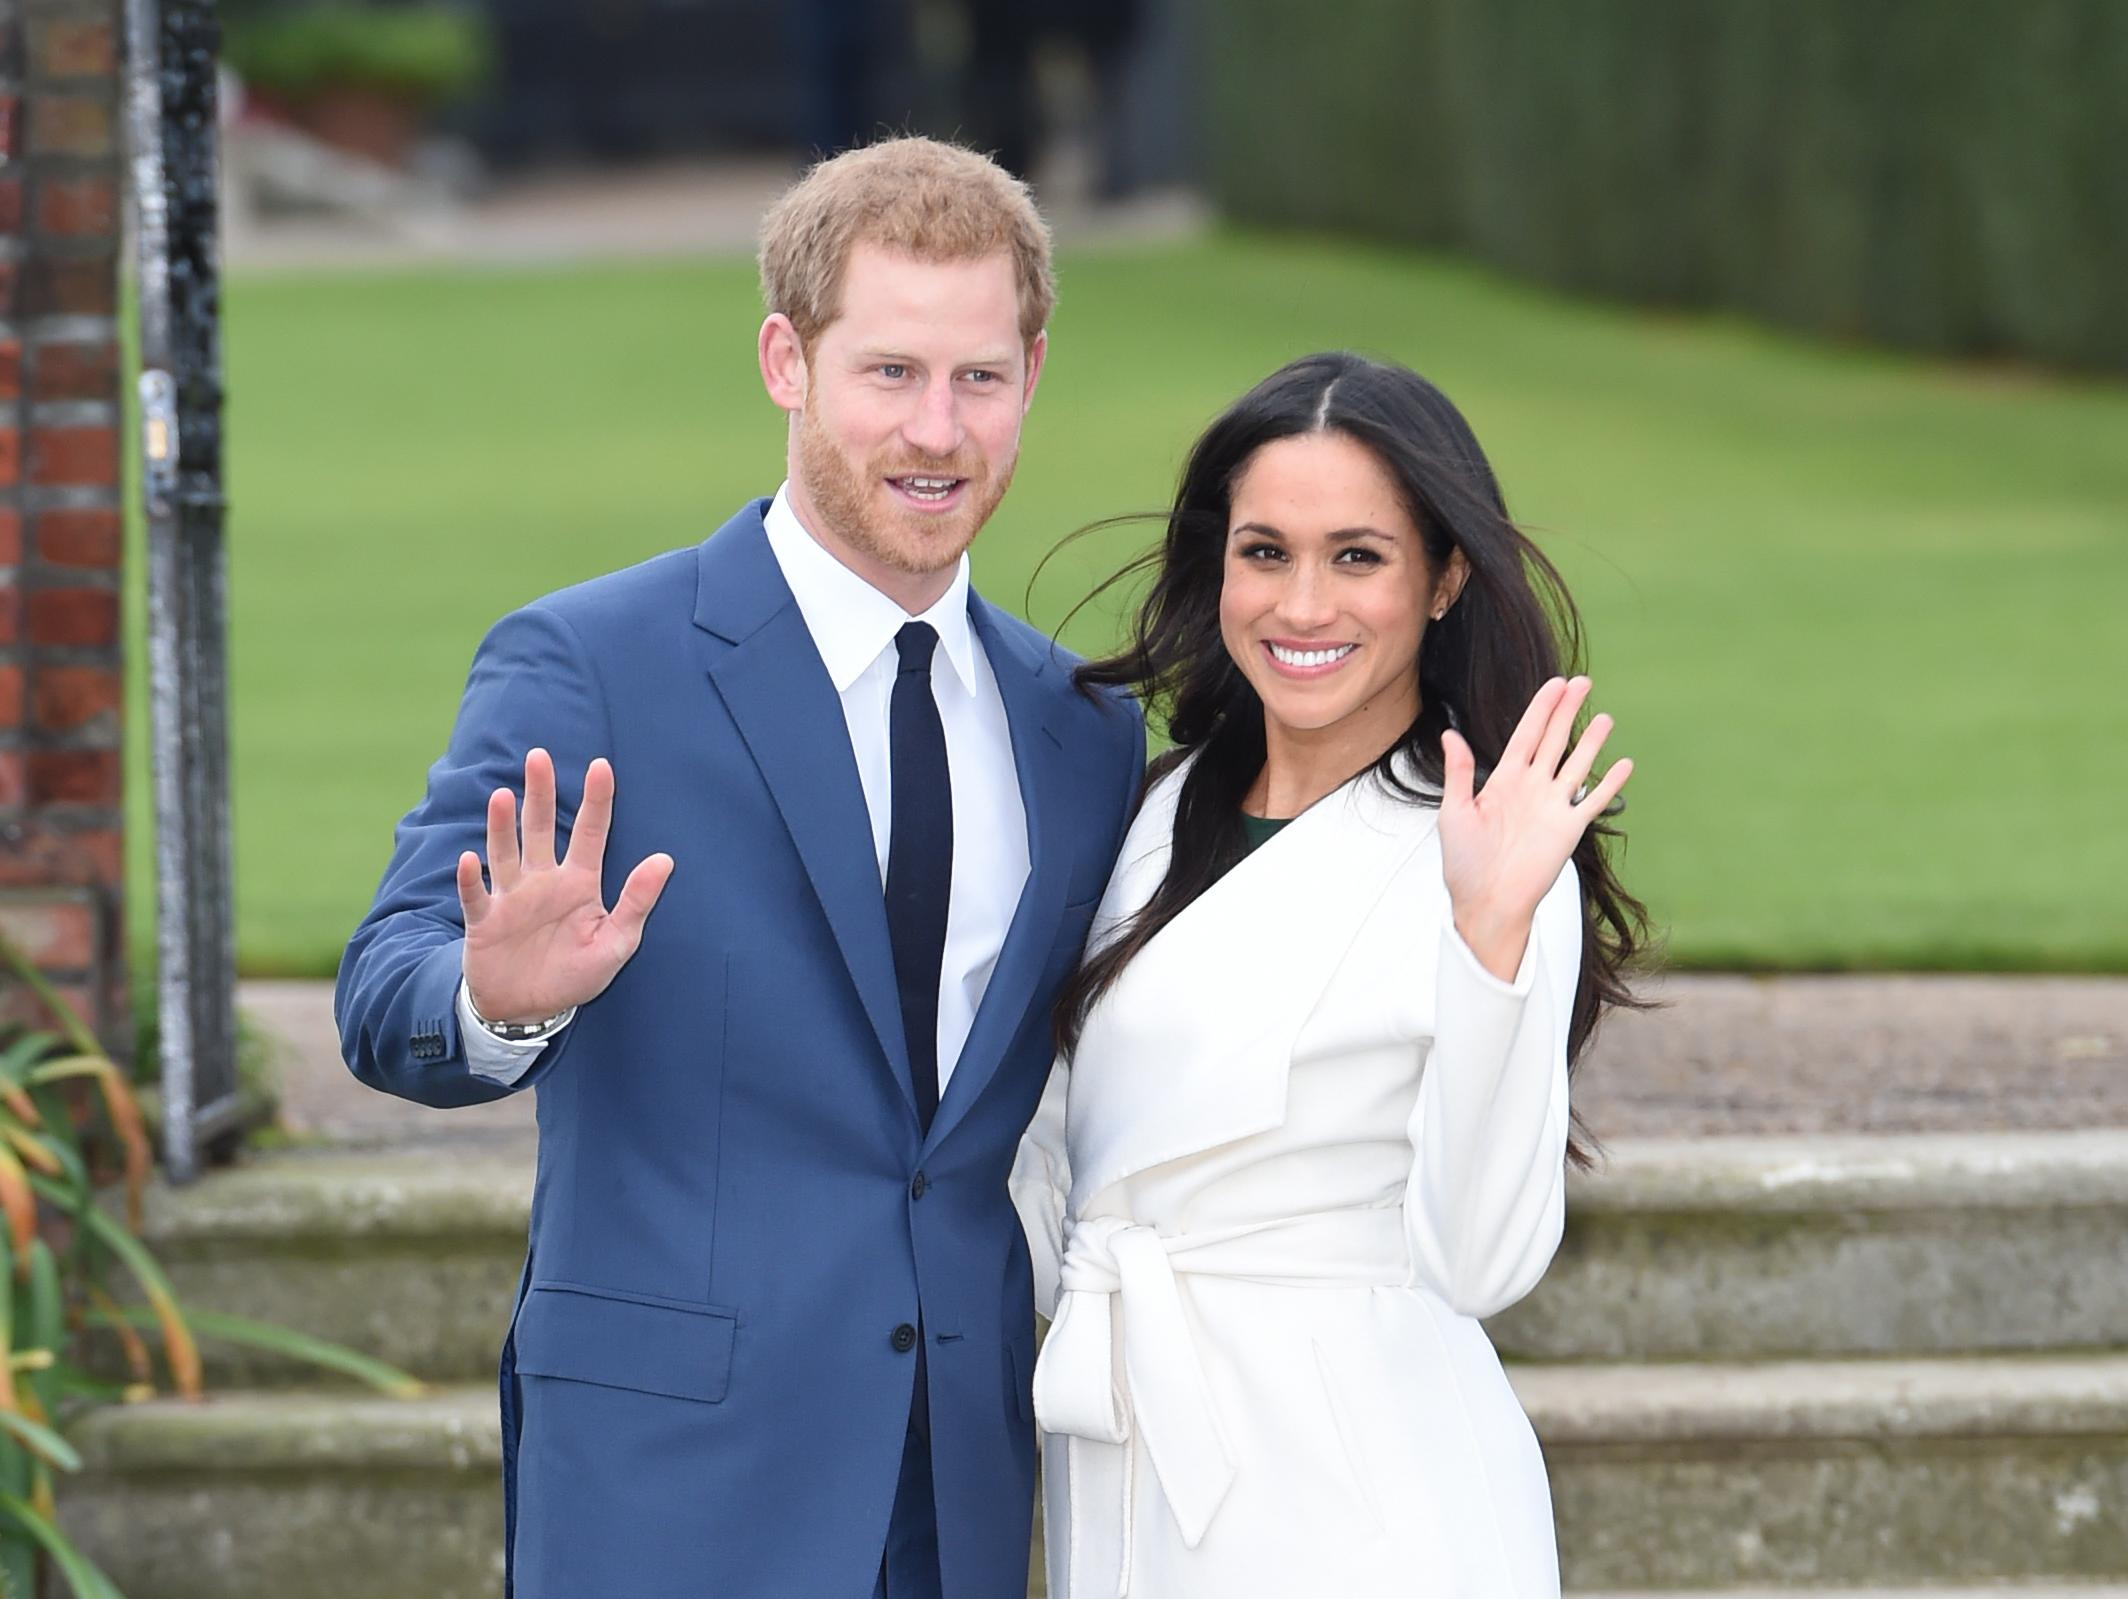 Harry Meghan Wedding Date.Prince Harry And Meghan Markle S Wedding Date And Venue All The Details Revealed